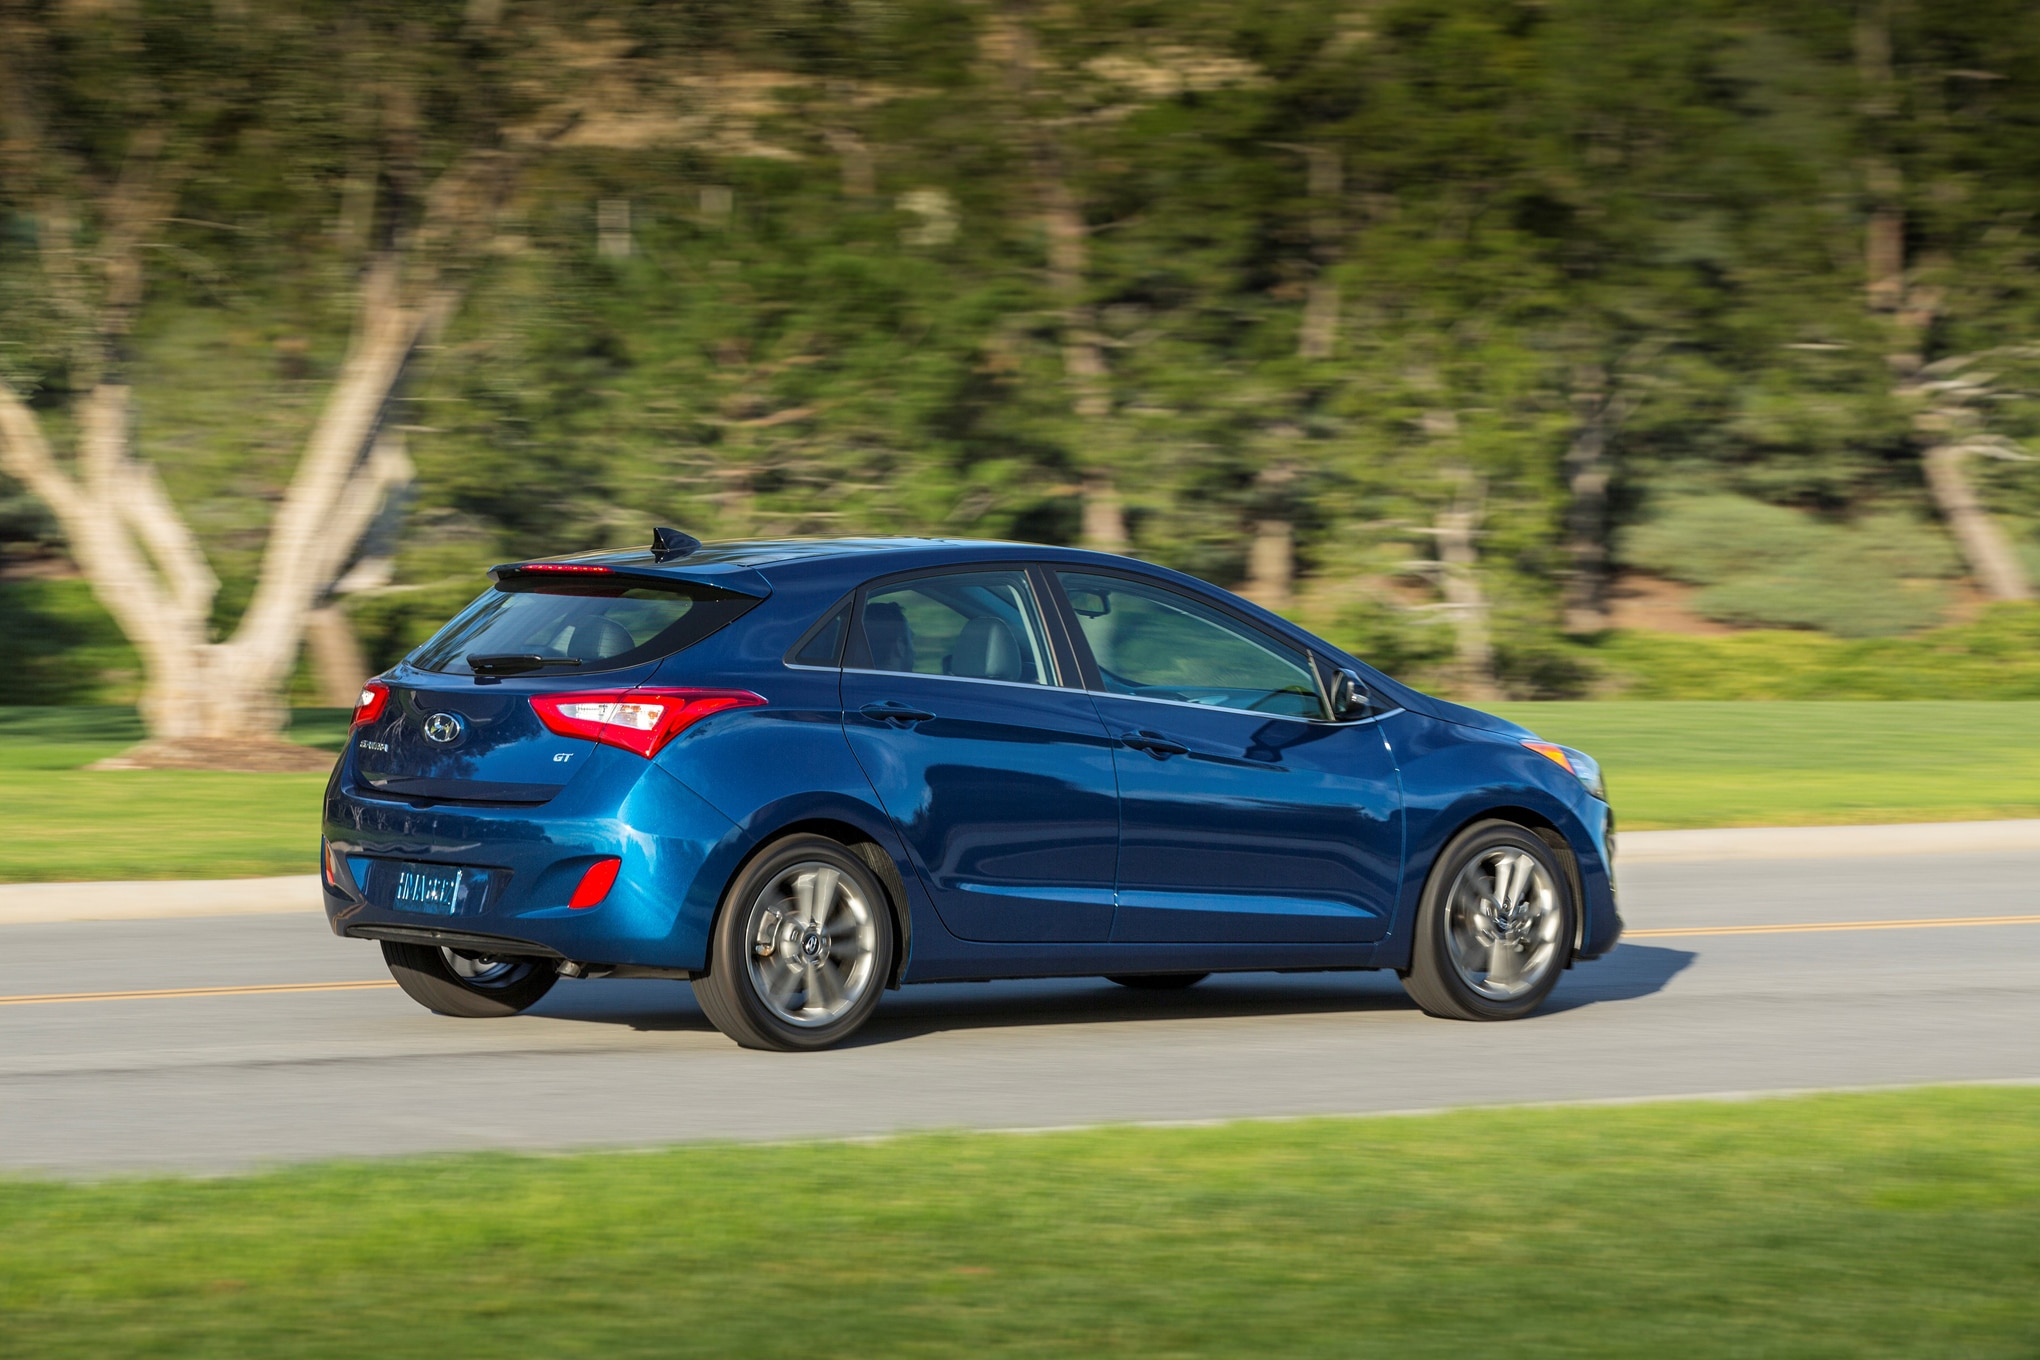 2016 hyundai elantra gt facelift debuts in chicago. Black Bedroom Furniture Sets. Home Design Ideas